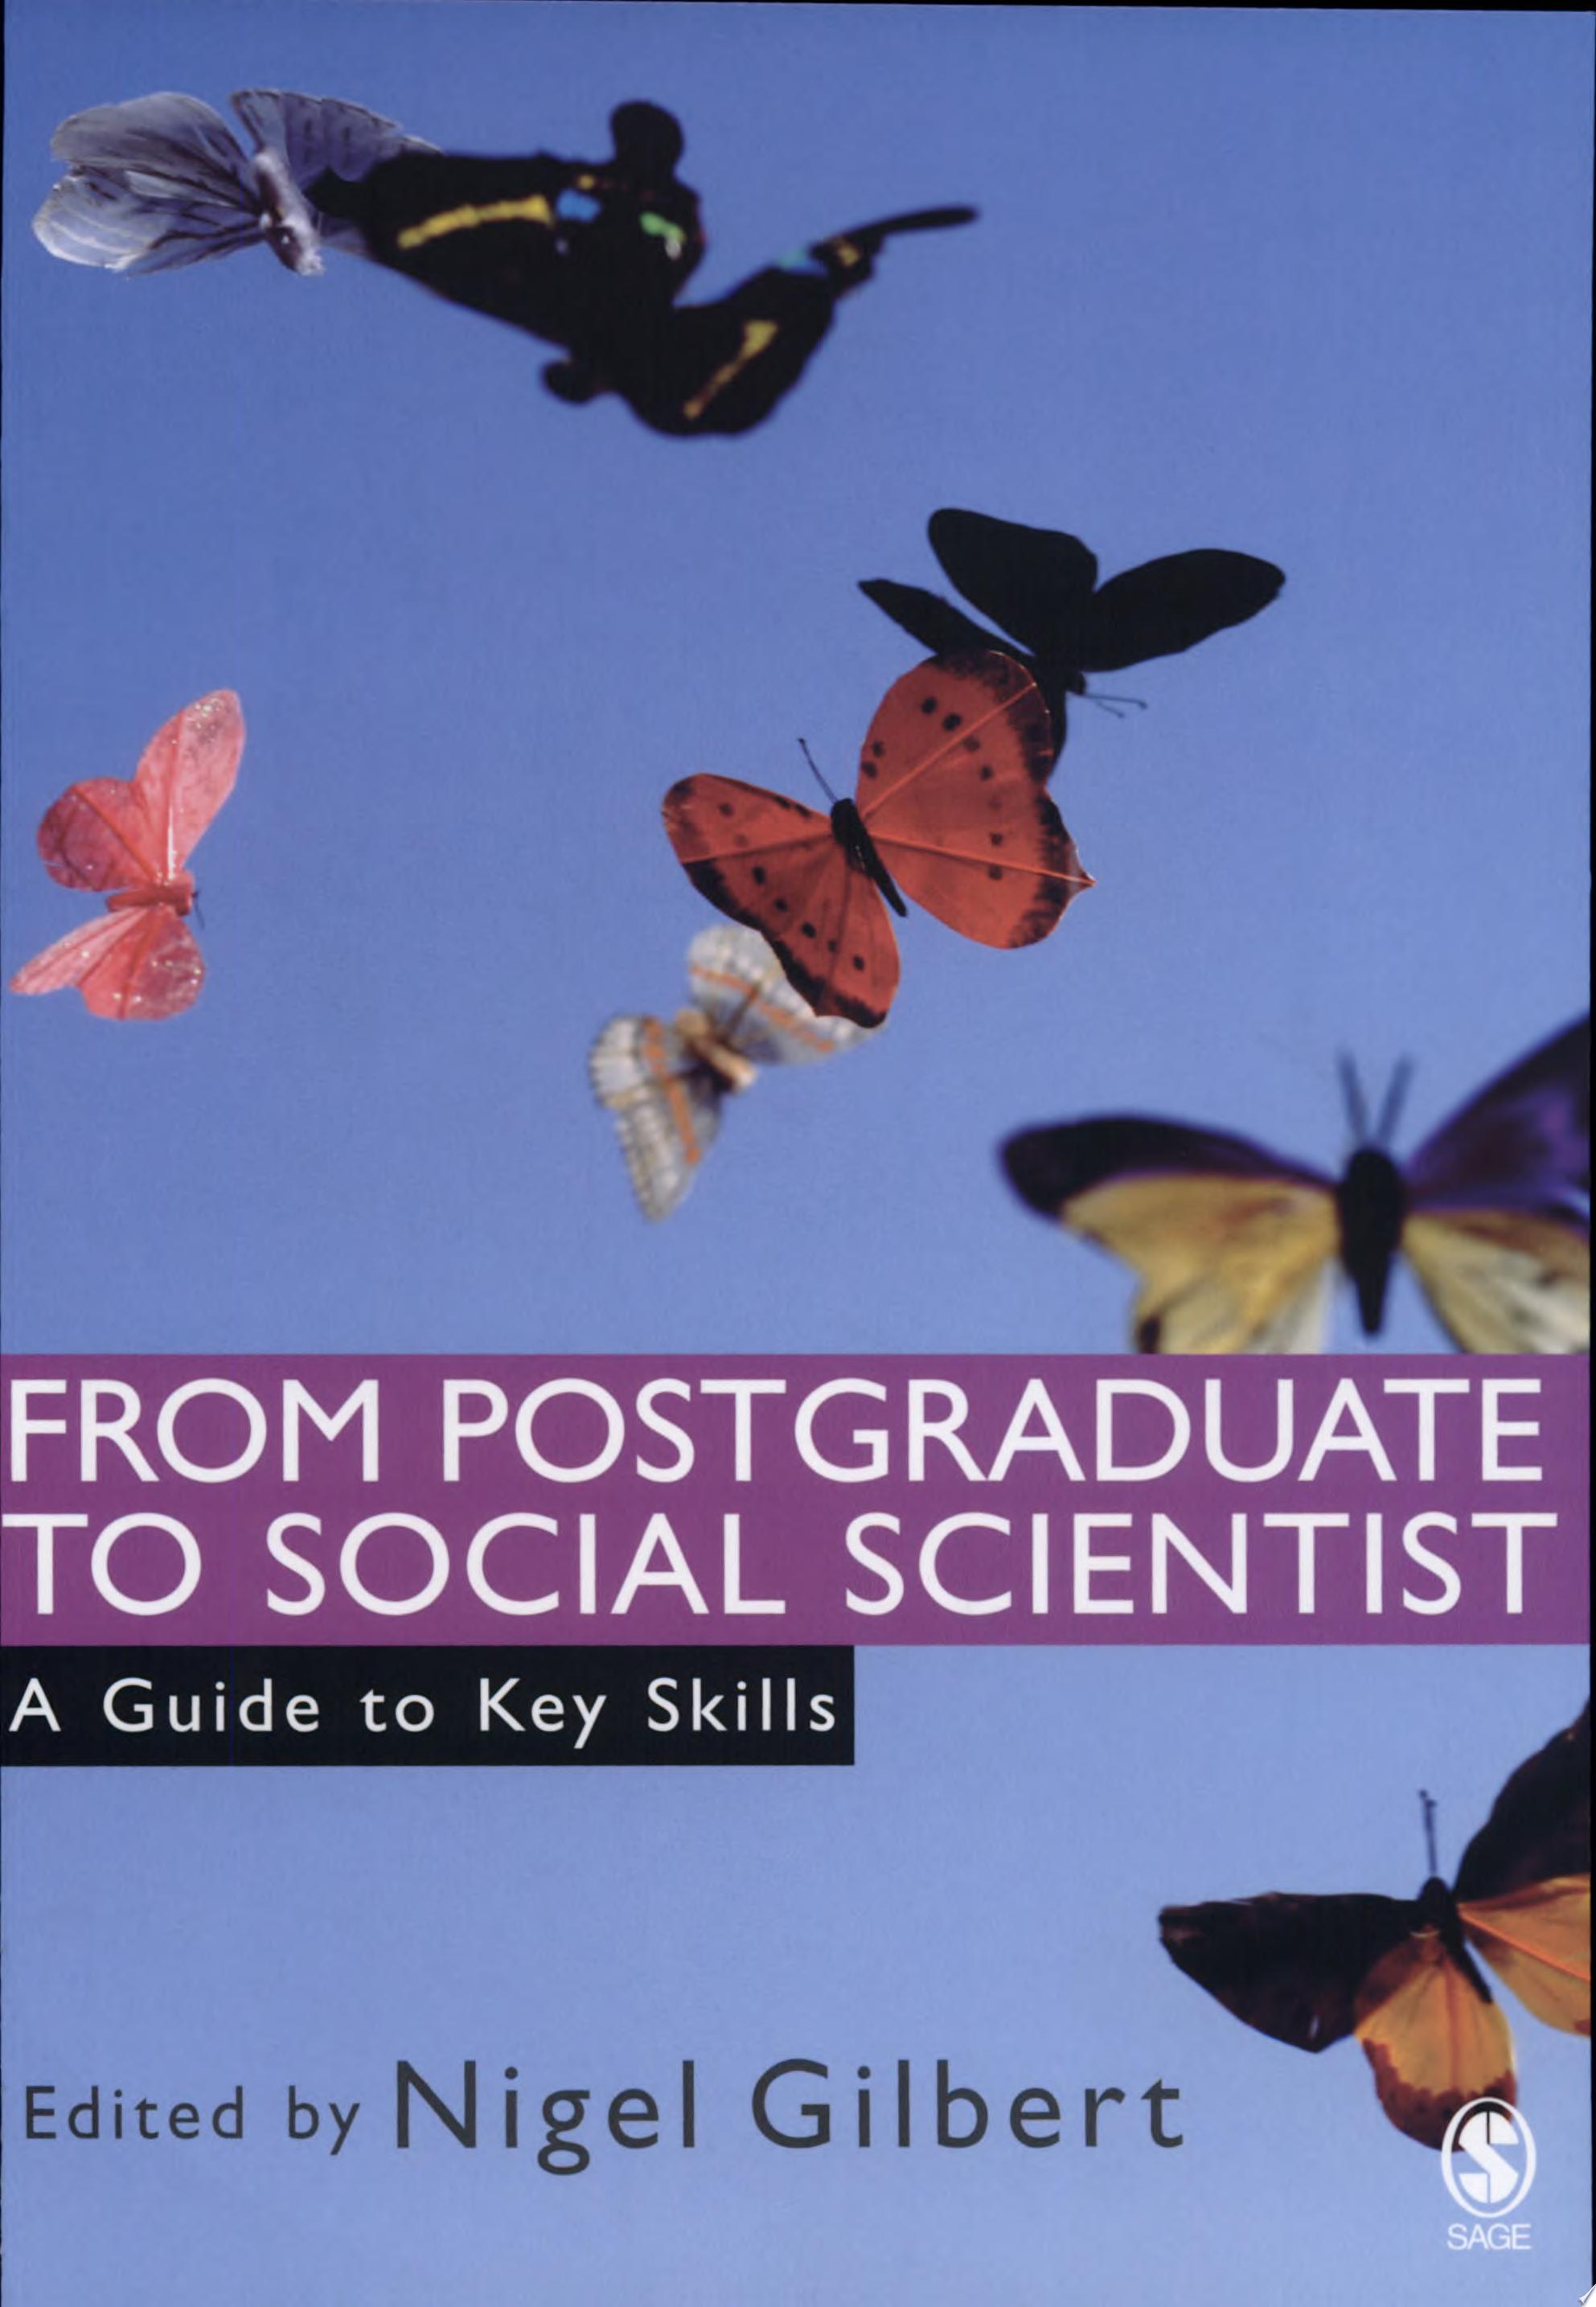 From Postgraduate to Social Scientist